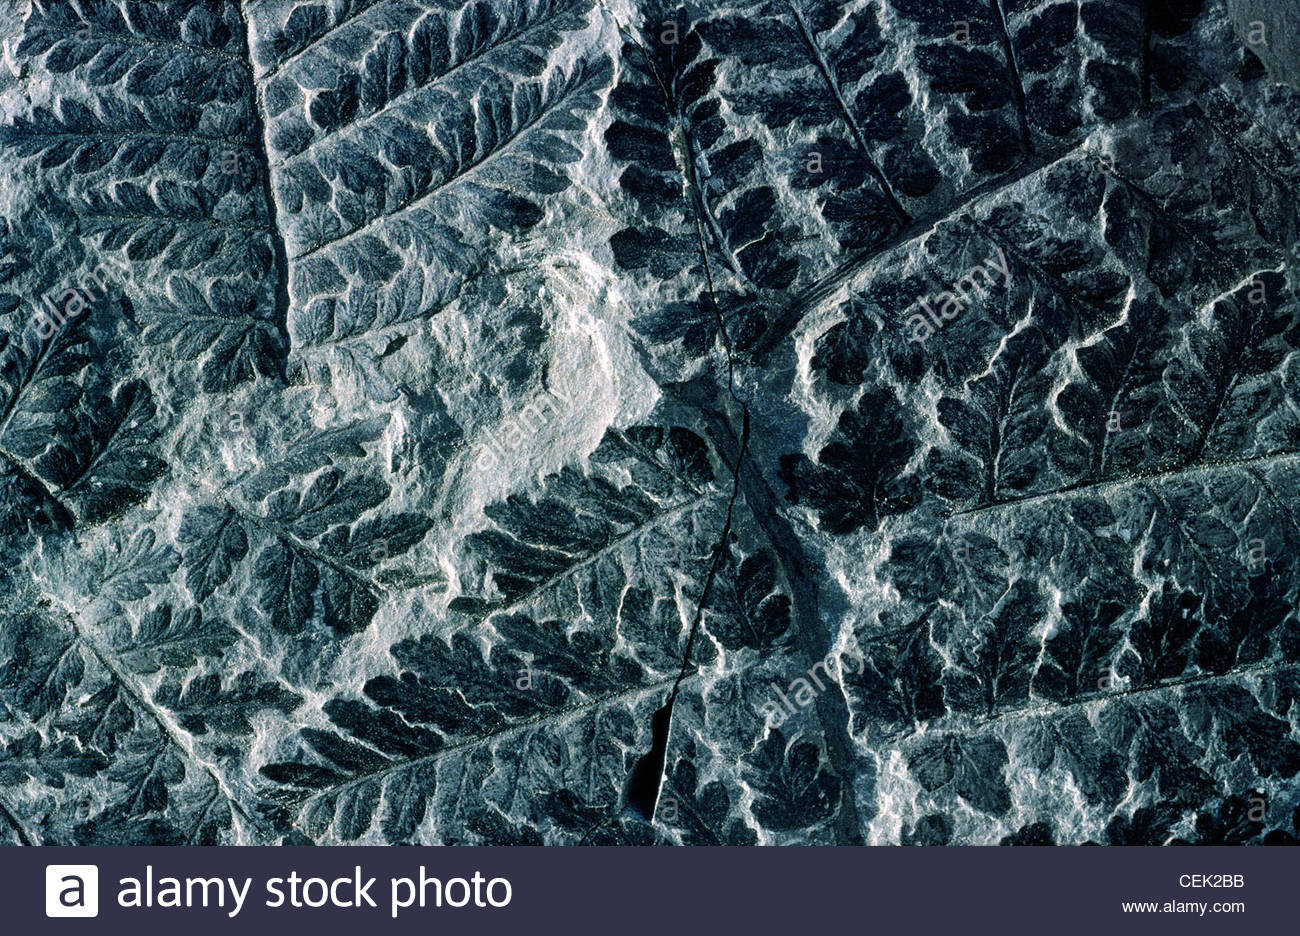 Fine example of fossilised fern of type Sphenopteris preserved in Carboniferous coal sample 300 million years old - Stock Image